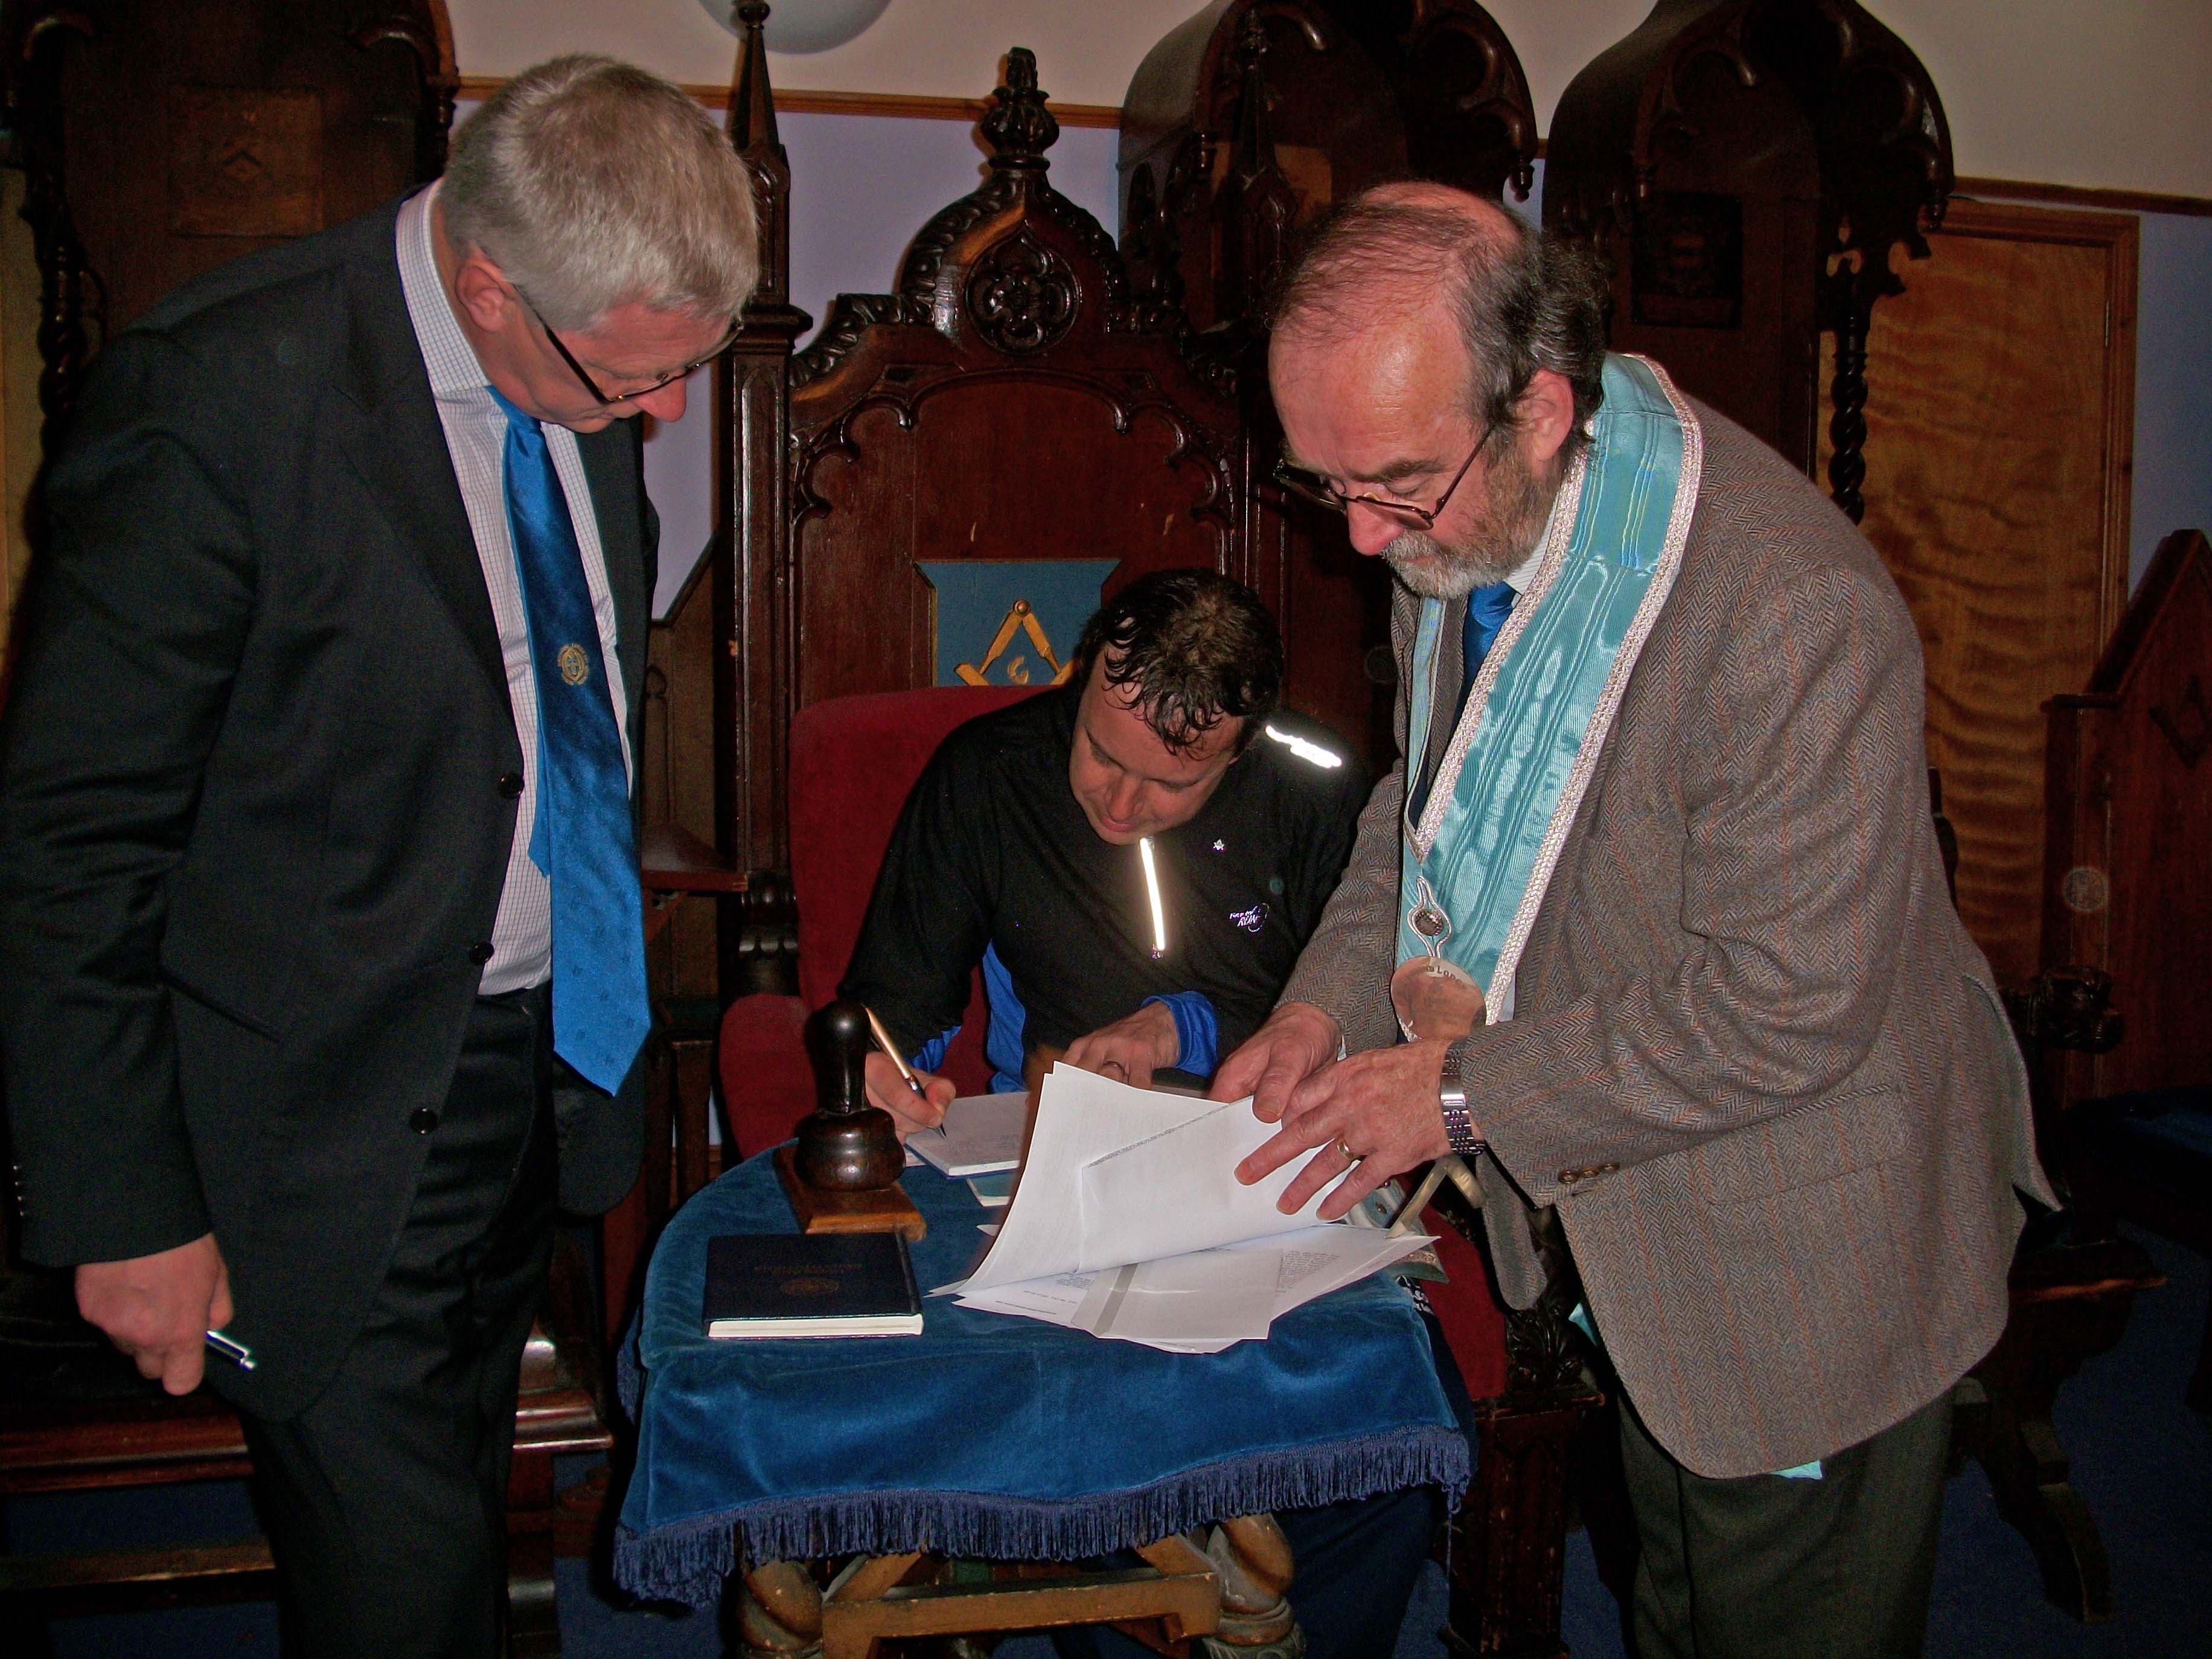 Signing the visitors' book